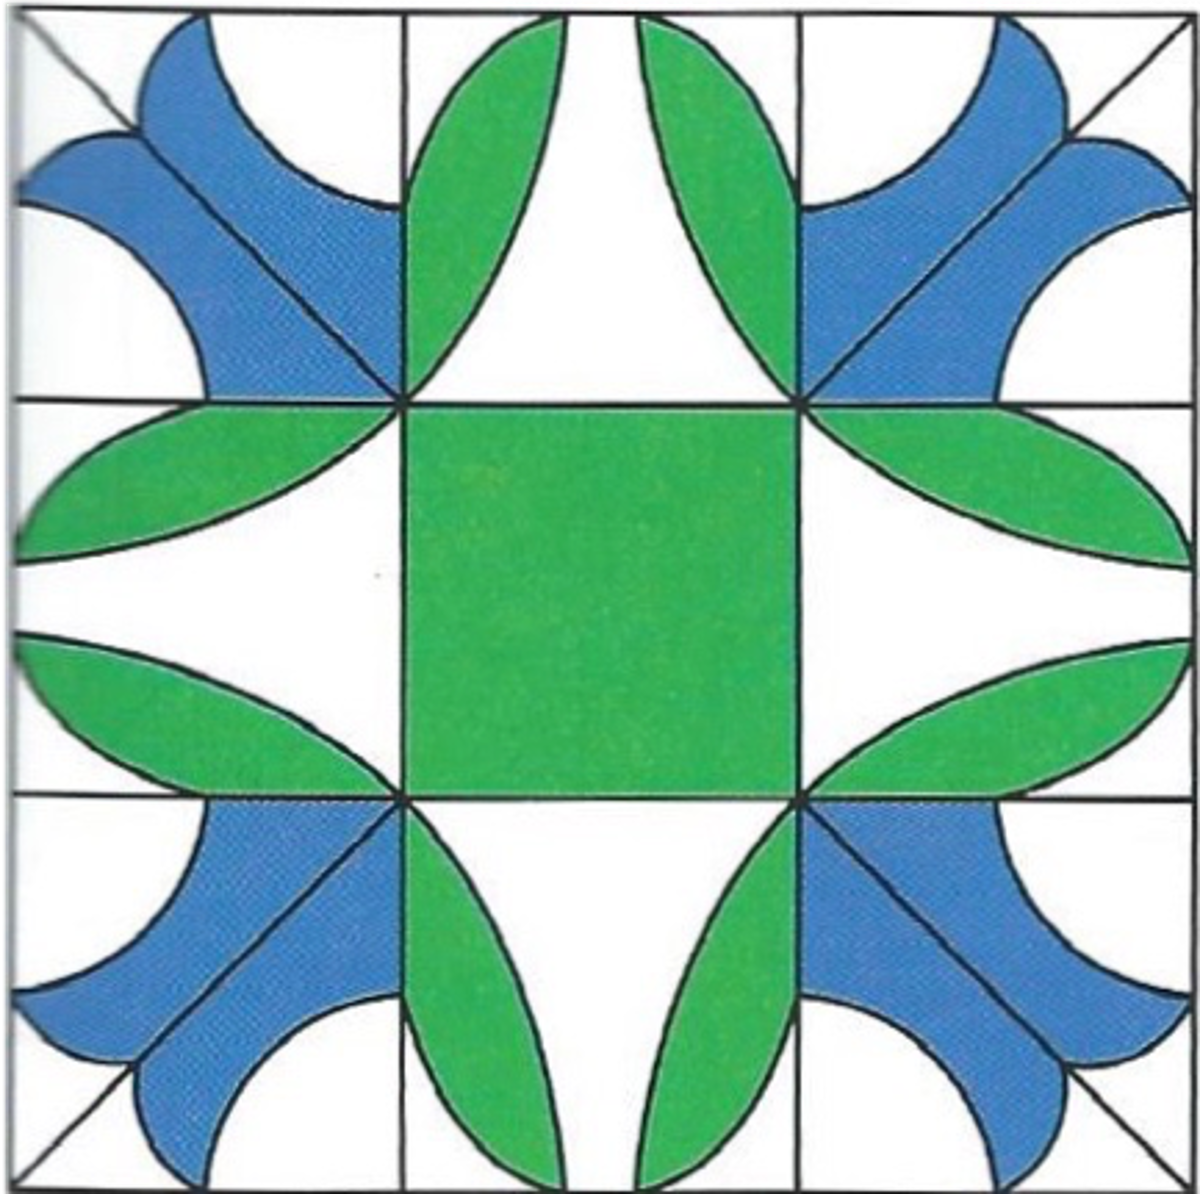 A Bluebells quilt square